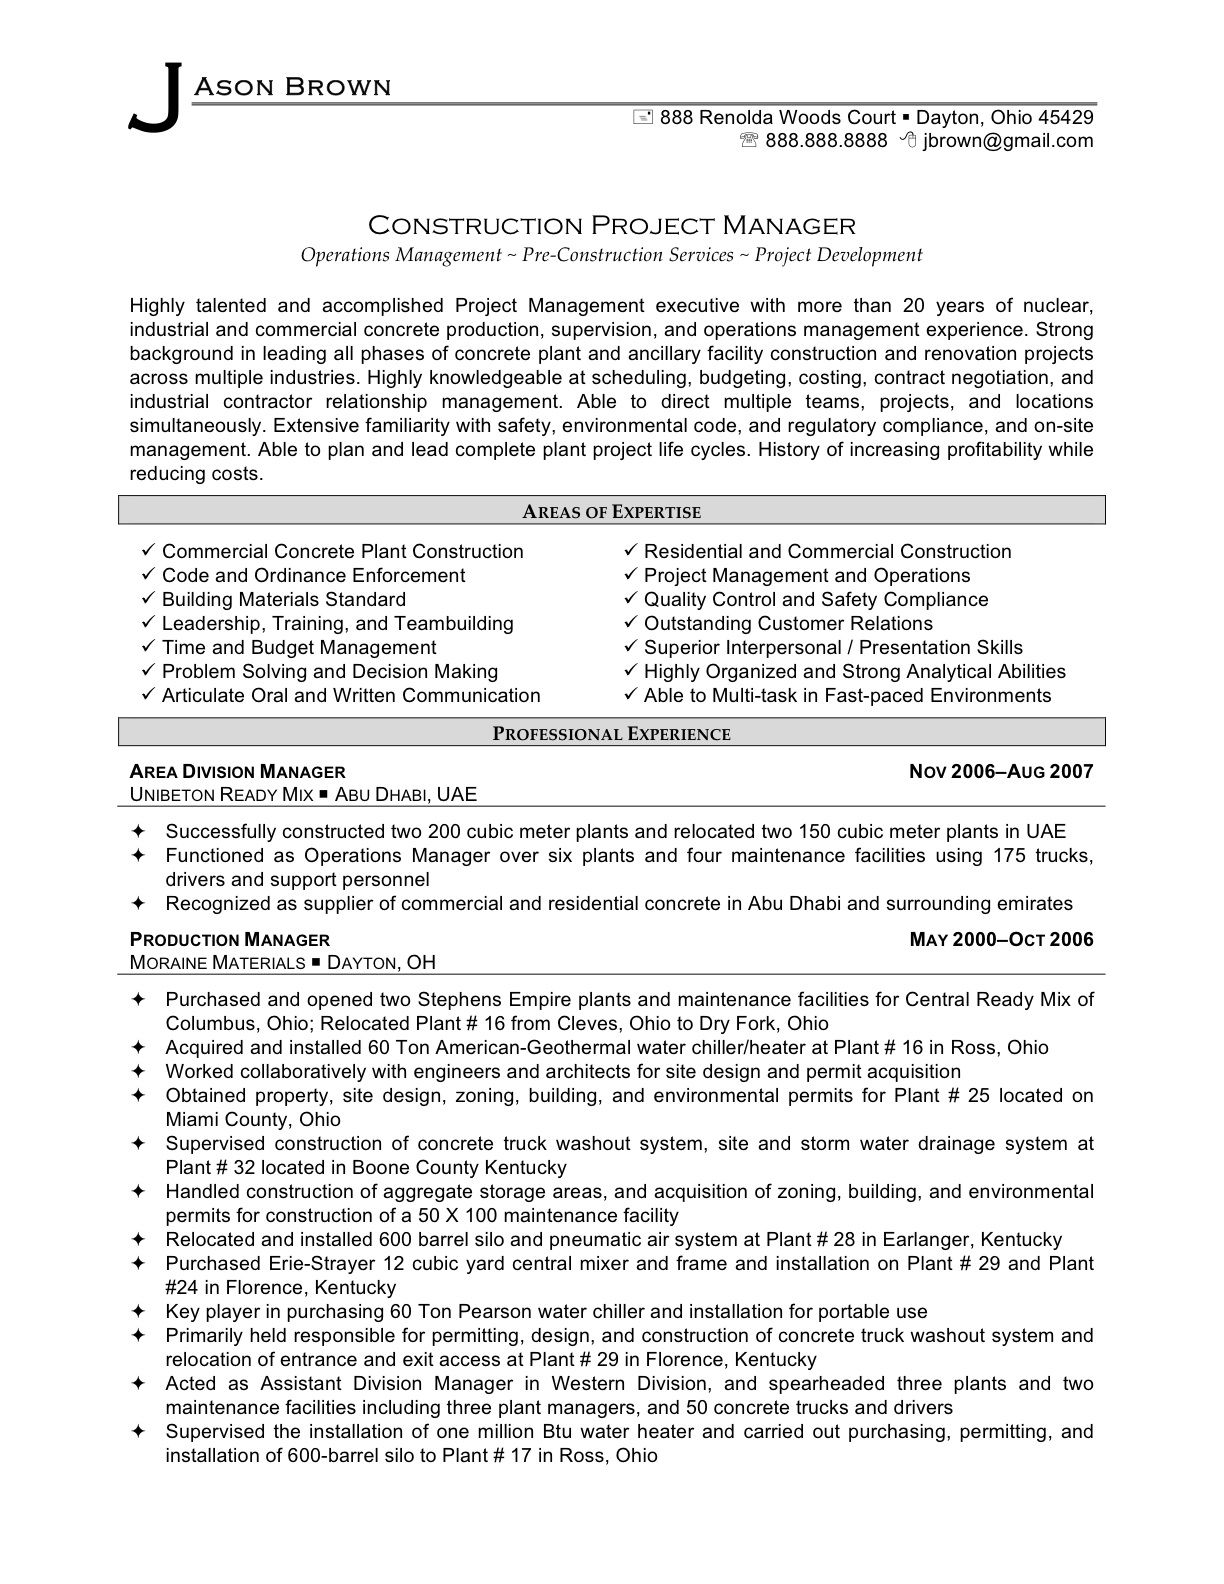 Resume Templates Project Manager Residential Or Commercial